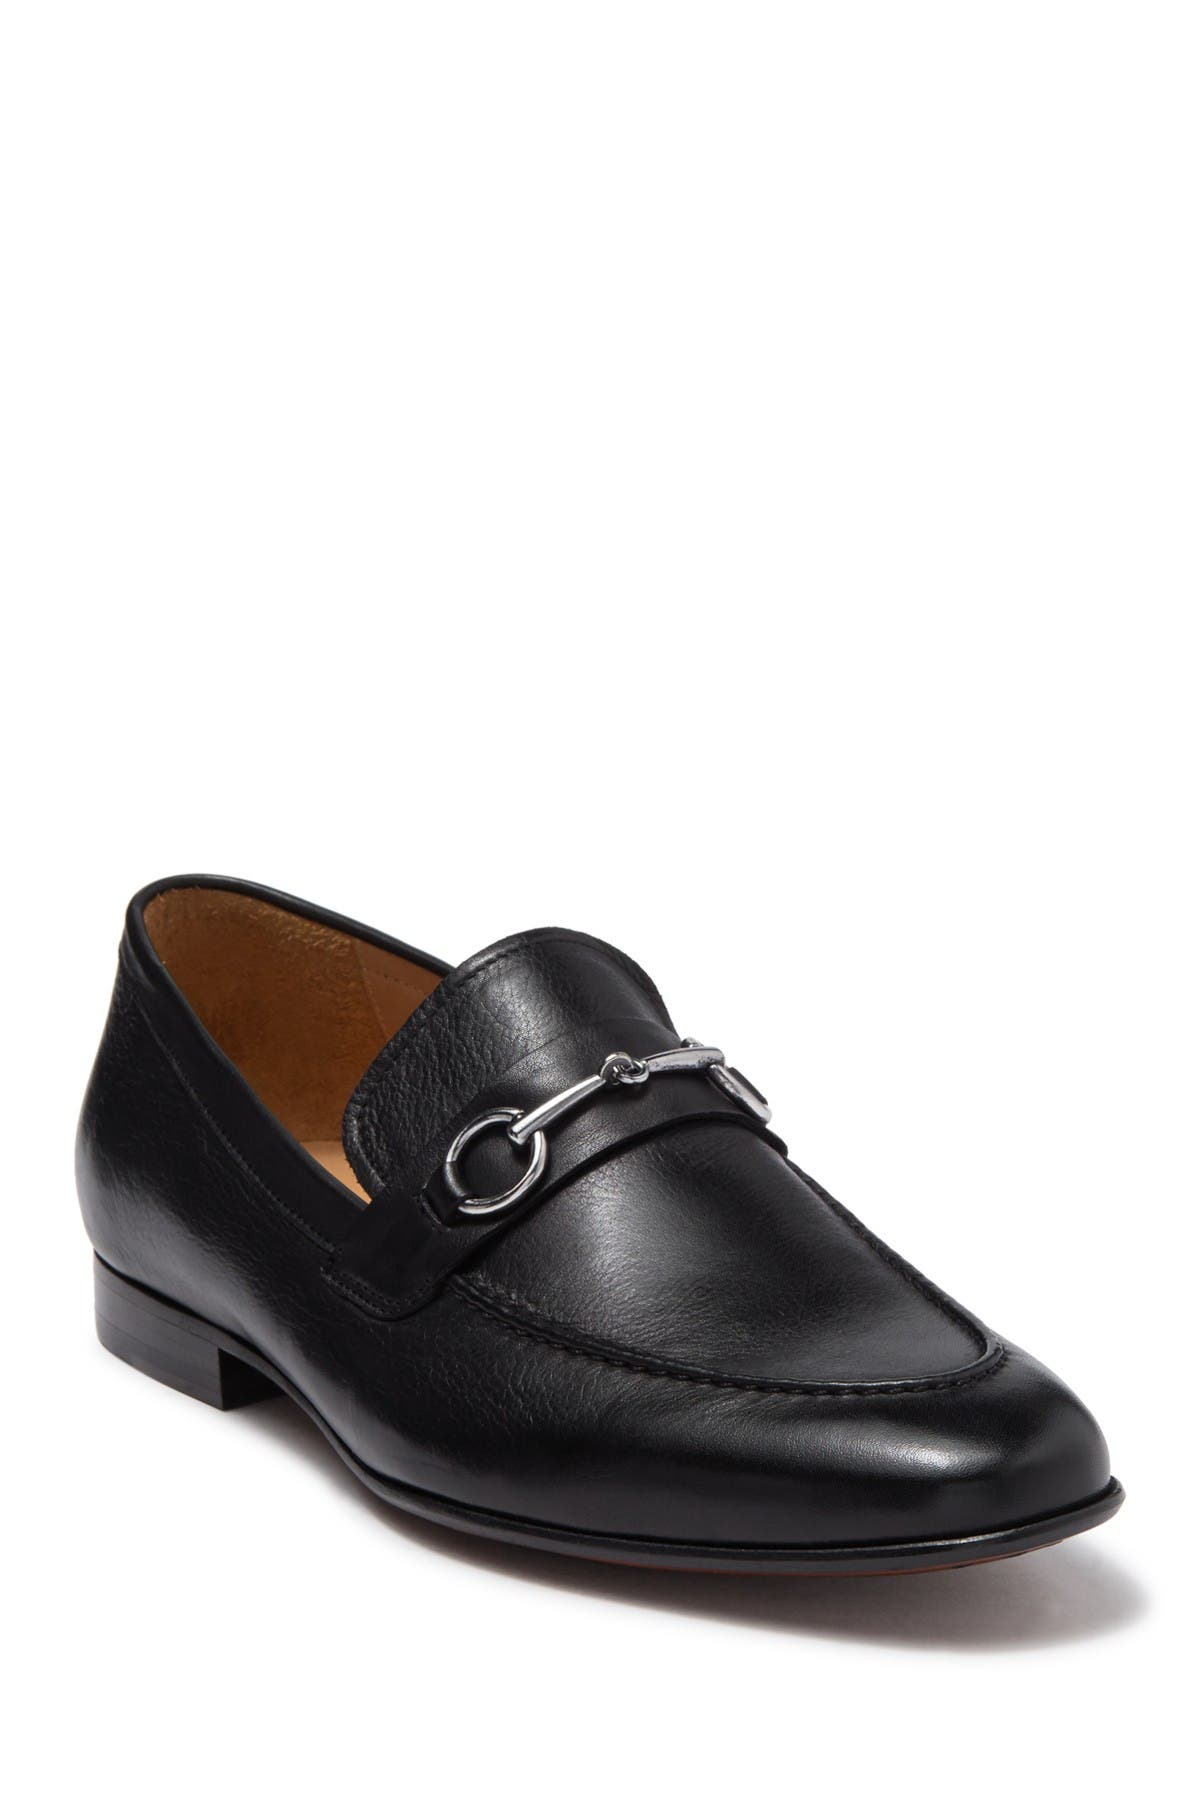 Image of Curatore Brucato Bit Leather Loafer